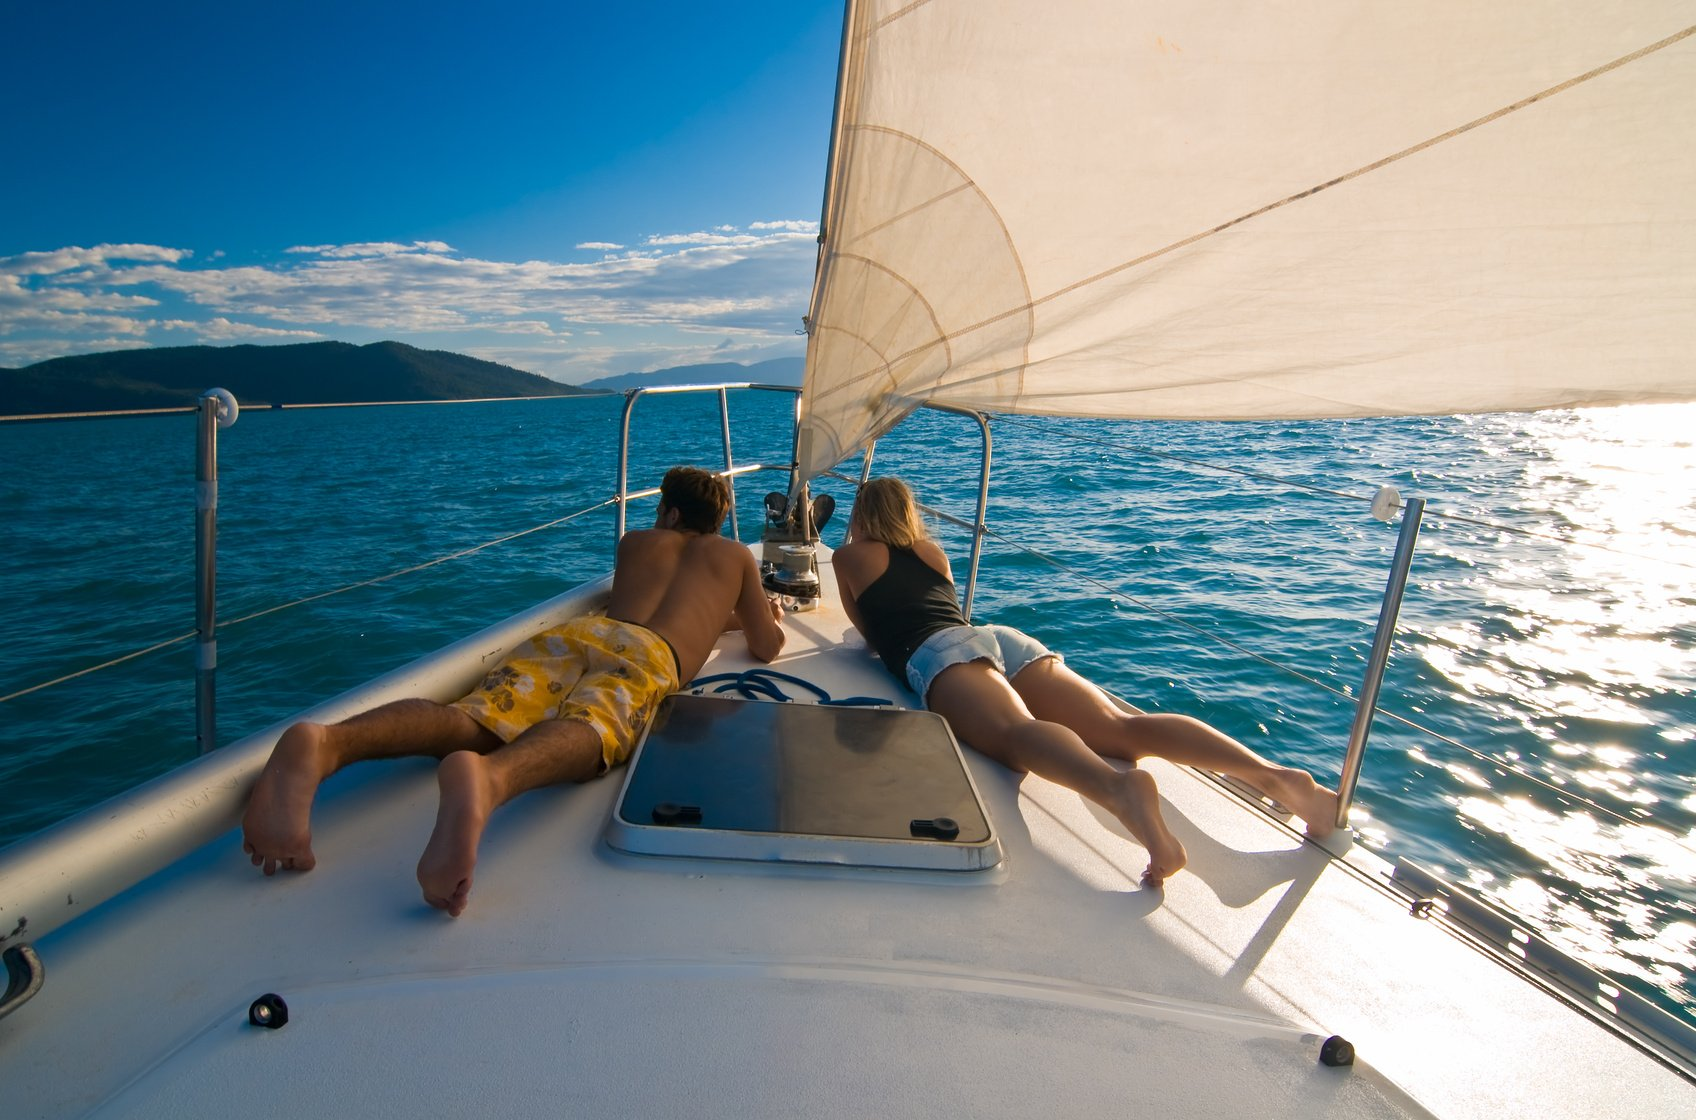 martinique-yacht-charter-martinique-yacht-rental-martinica-yacht-charter-martinica-yacht-rental-martinica-sailing-charter-family-couple-romantic